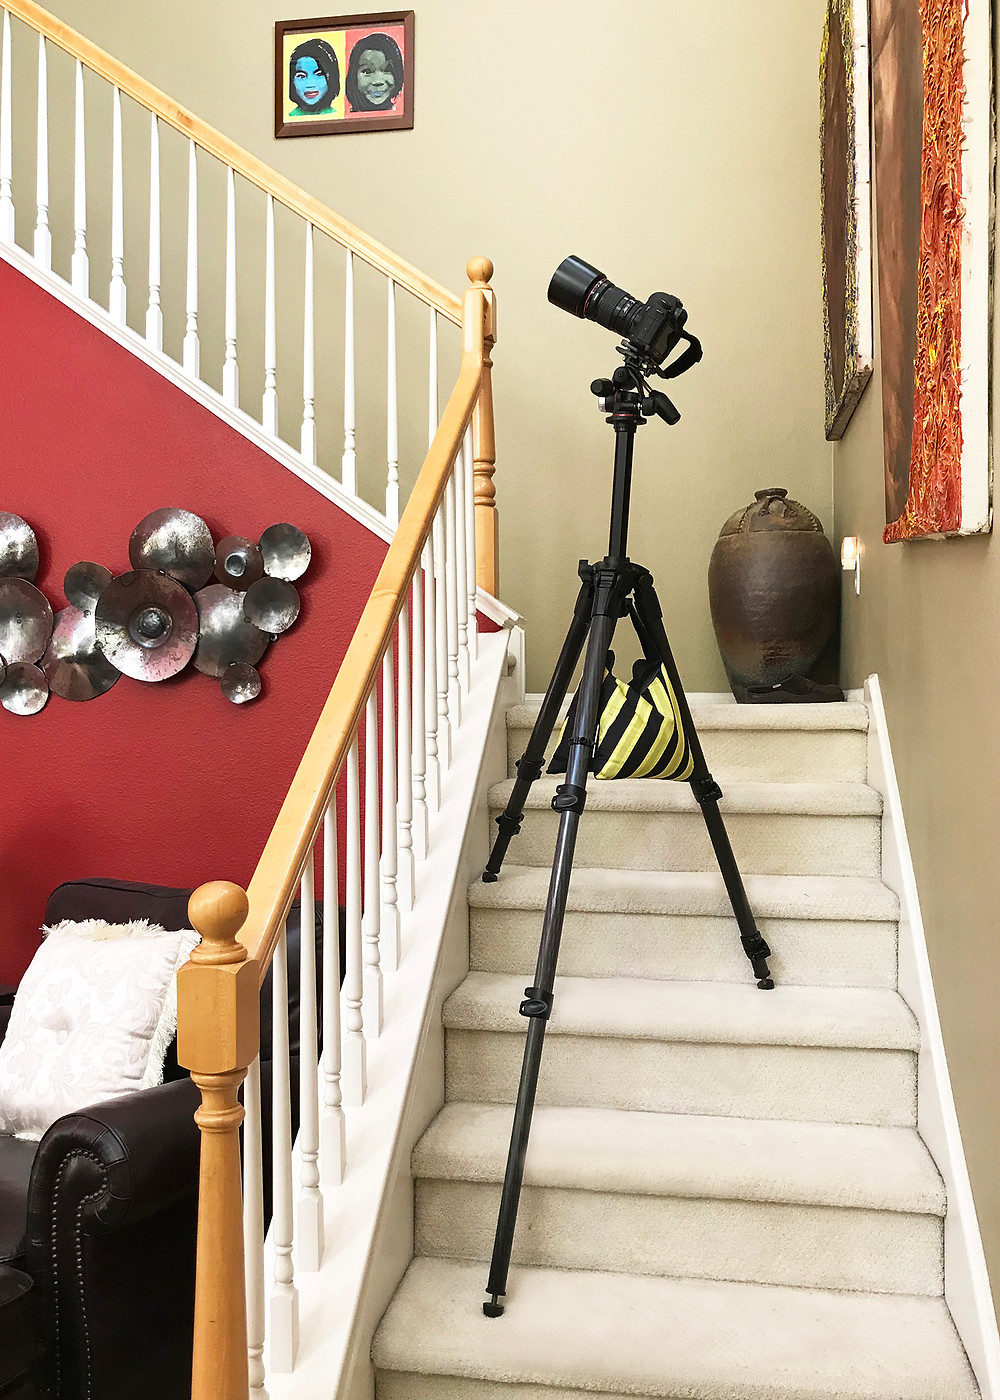 manfrotto 057 carbon fiber tripod on stairs